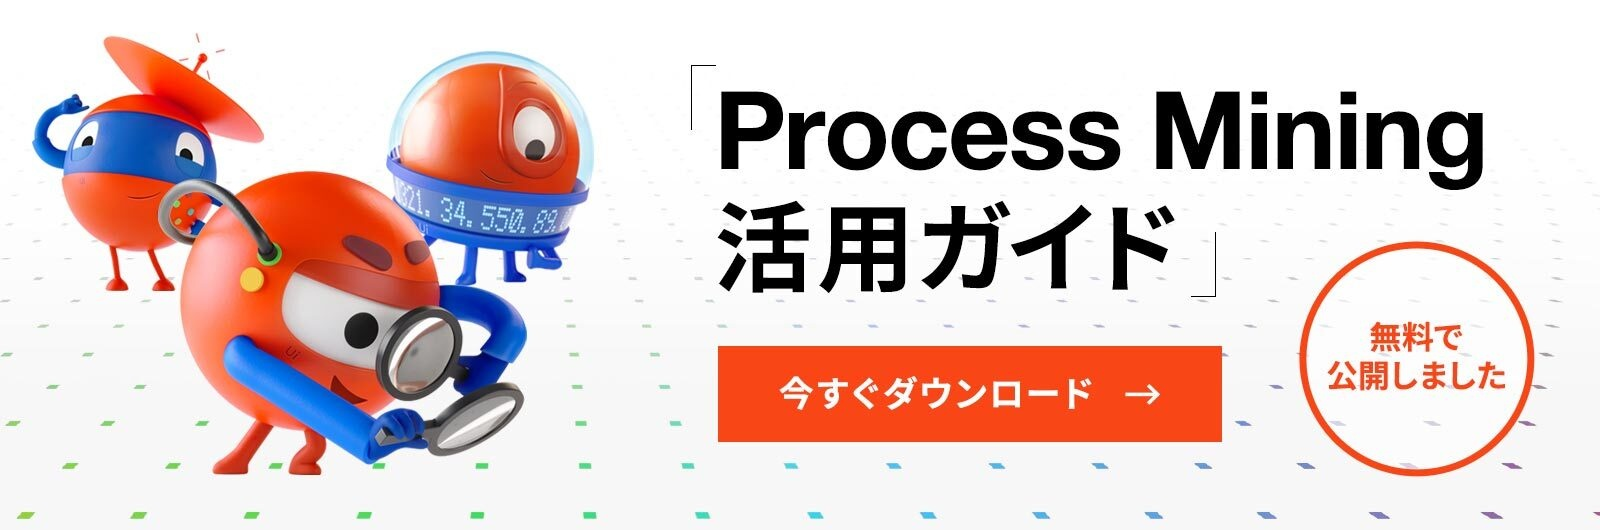 Process Mining Guidebook